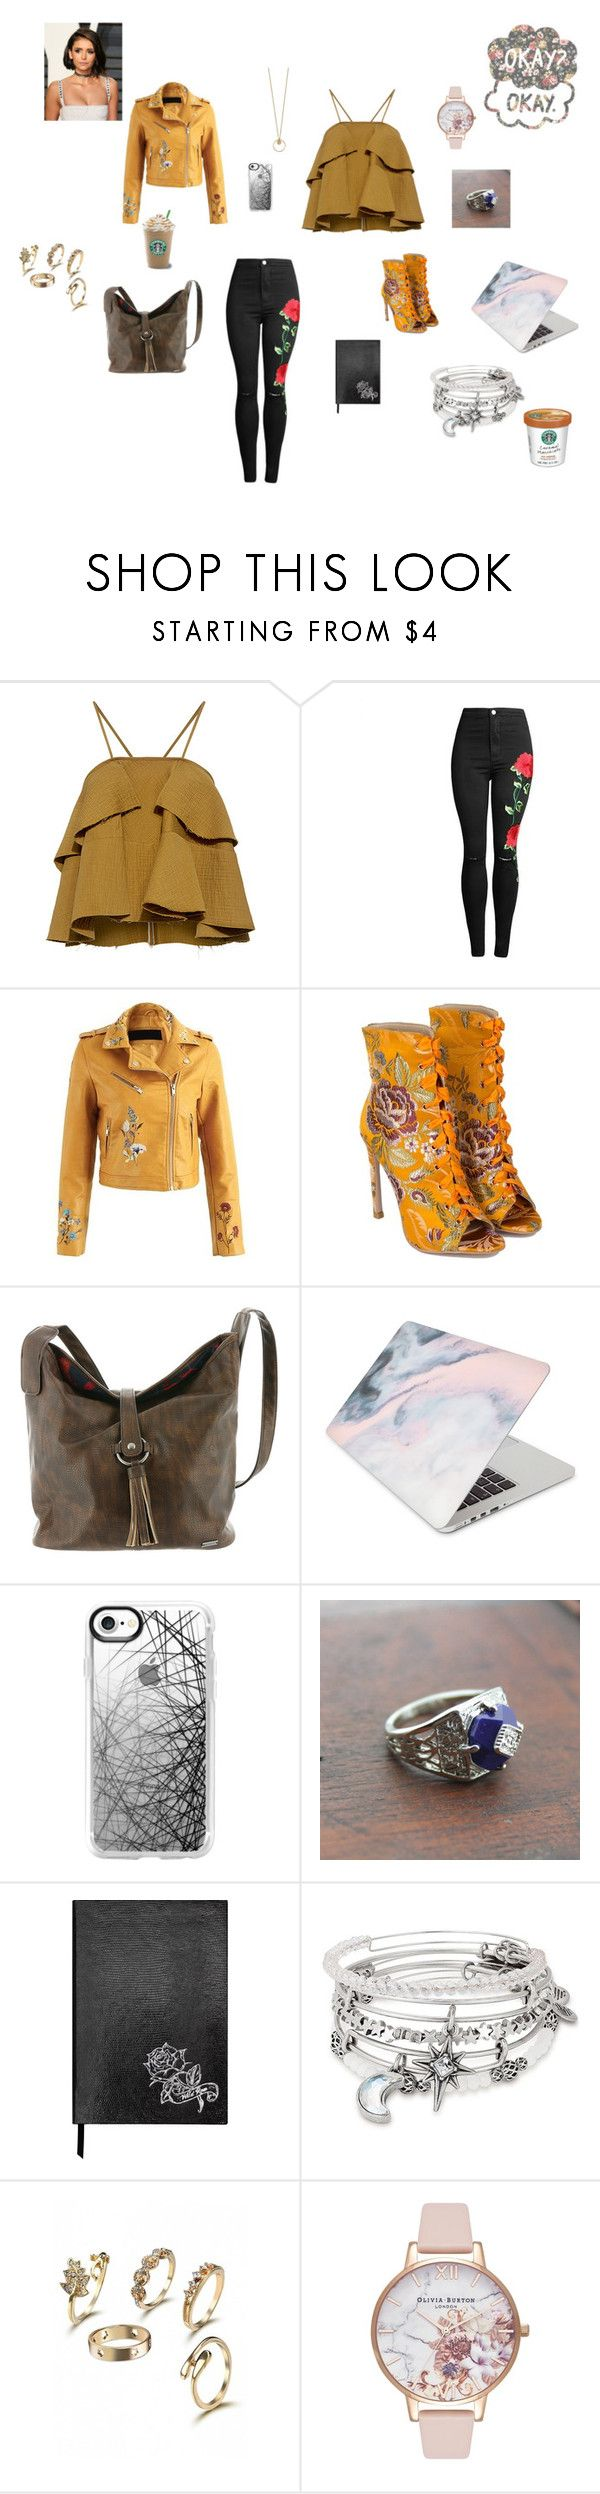 """""""Untitled #19"""" by graciepaeker on Polyvore featuring Rachel Comey, Roxy, Recover, Casetify, Sloane Stationery, Alex and Ani and Olivia Burton"""